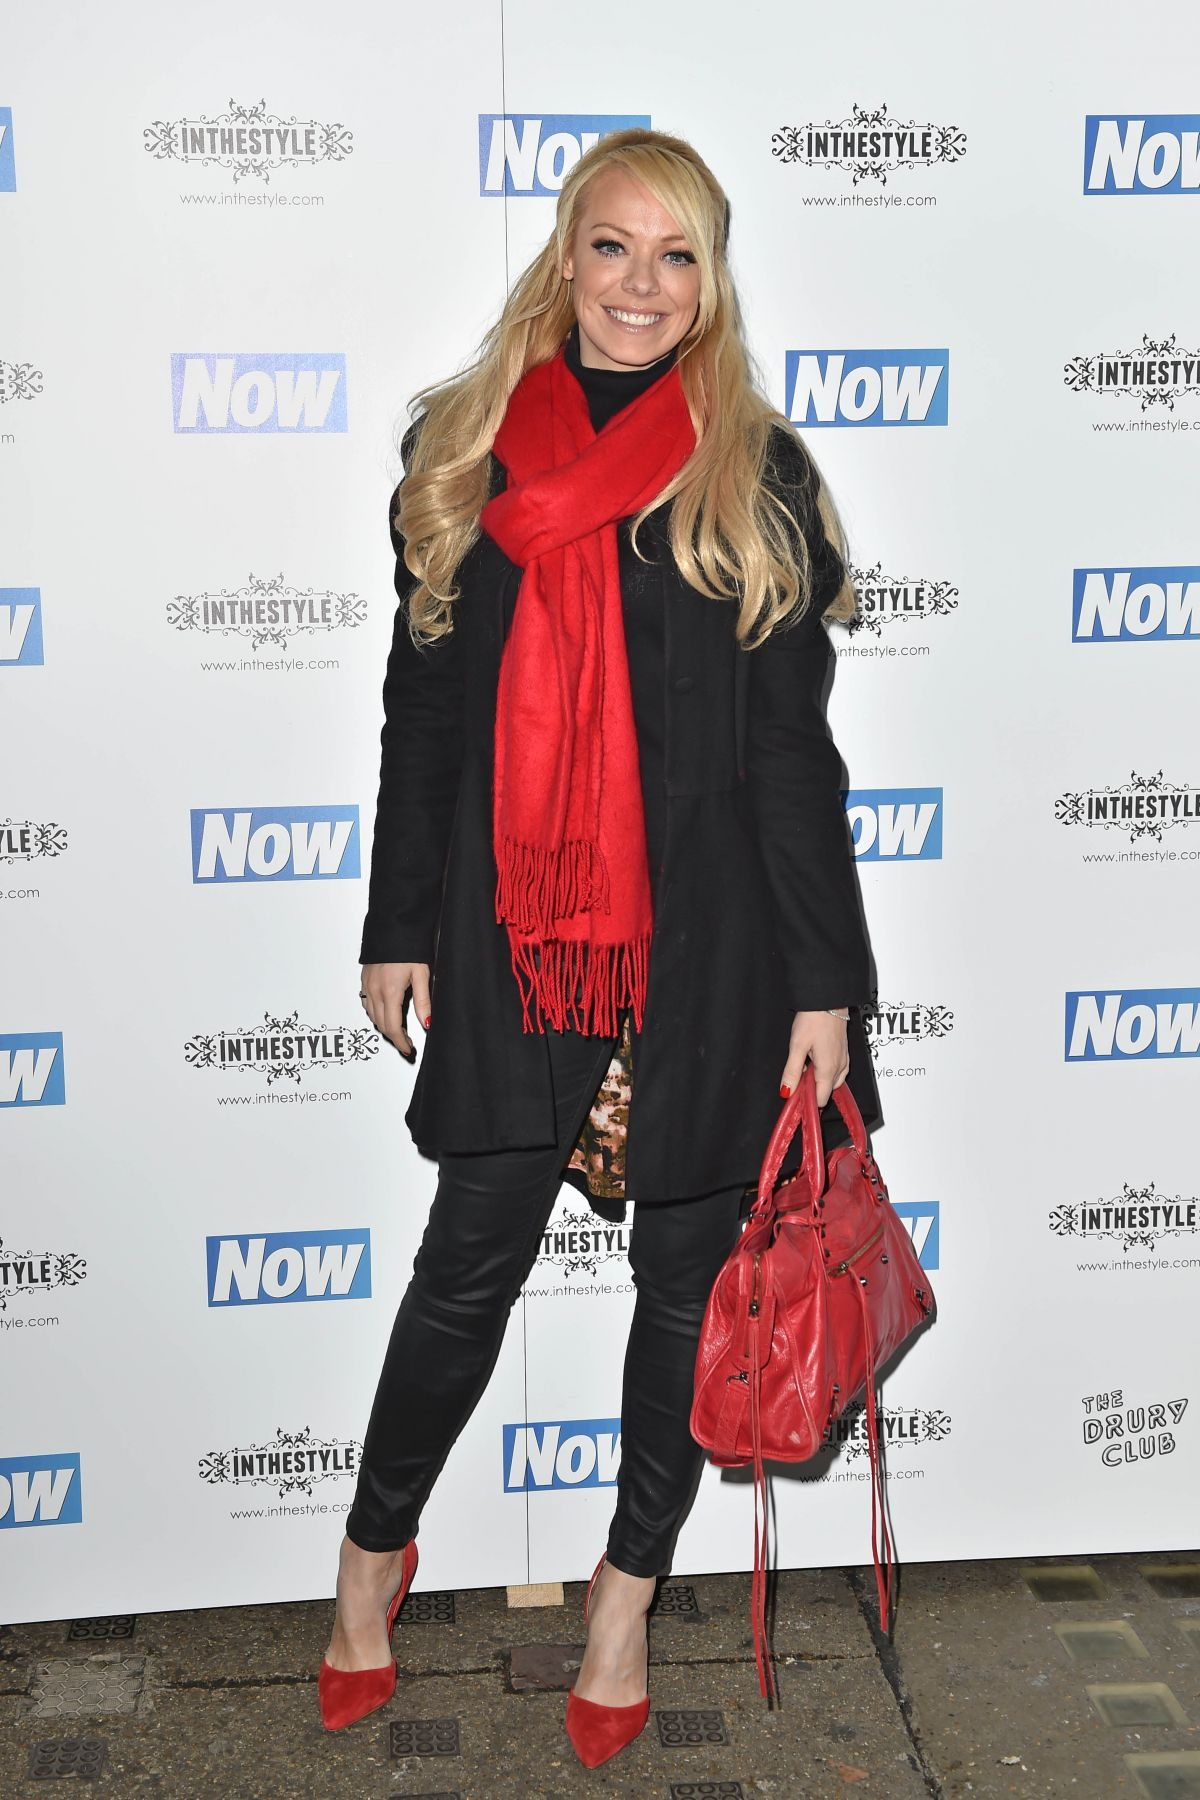 LIZ MCCLARNON at Now Christmas Party in London